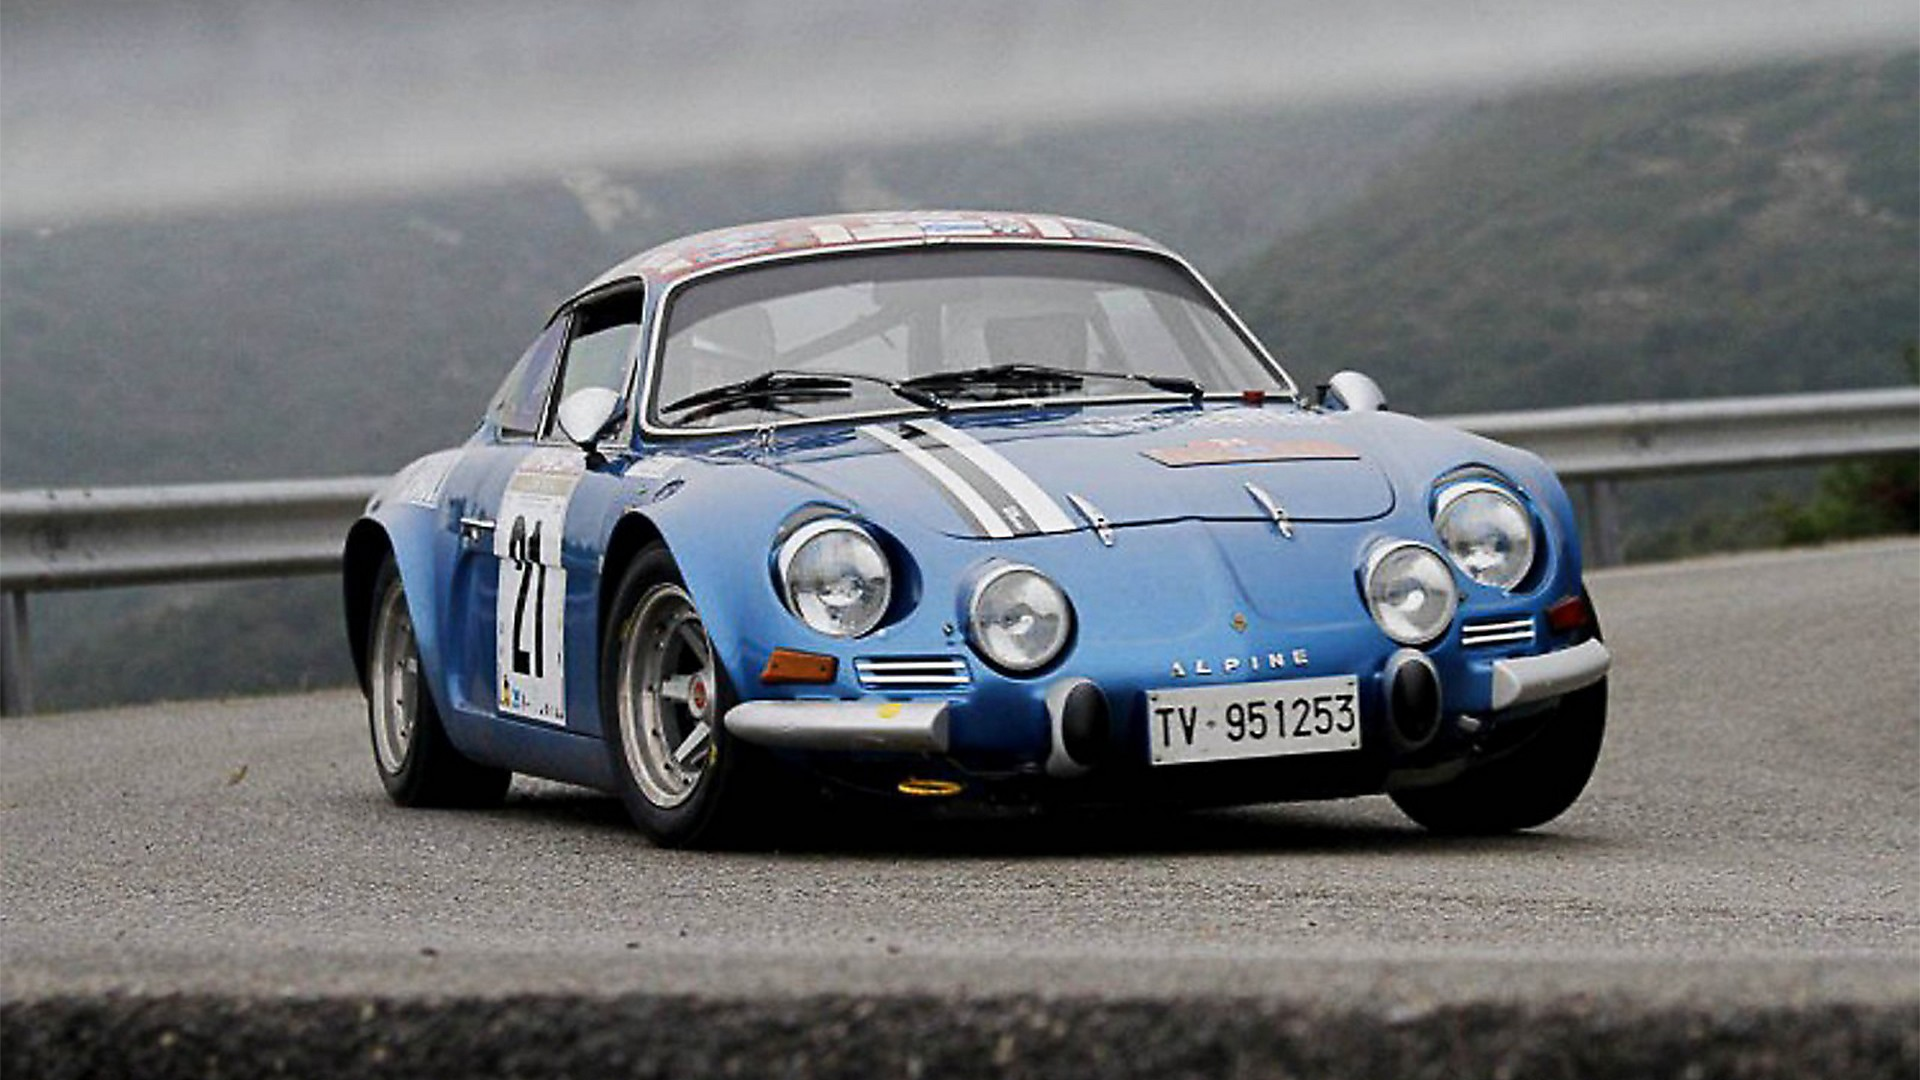 la storia della alpine a110 la berlinetta super leggera regina dei rally. Black Bedroom Furniture Sets. Home Design Ideas